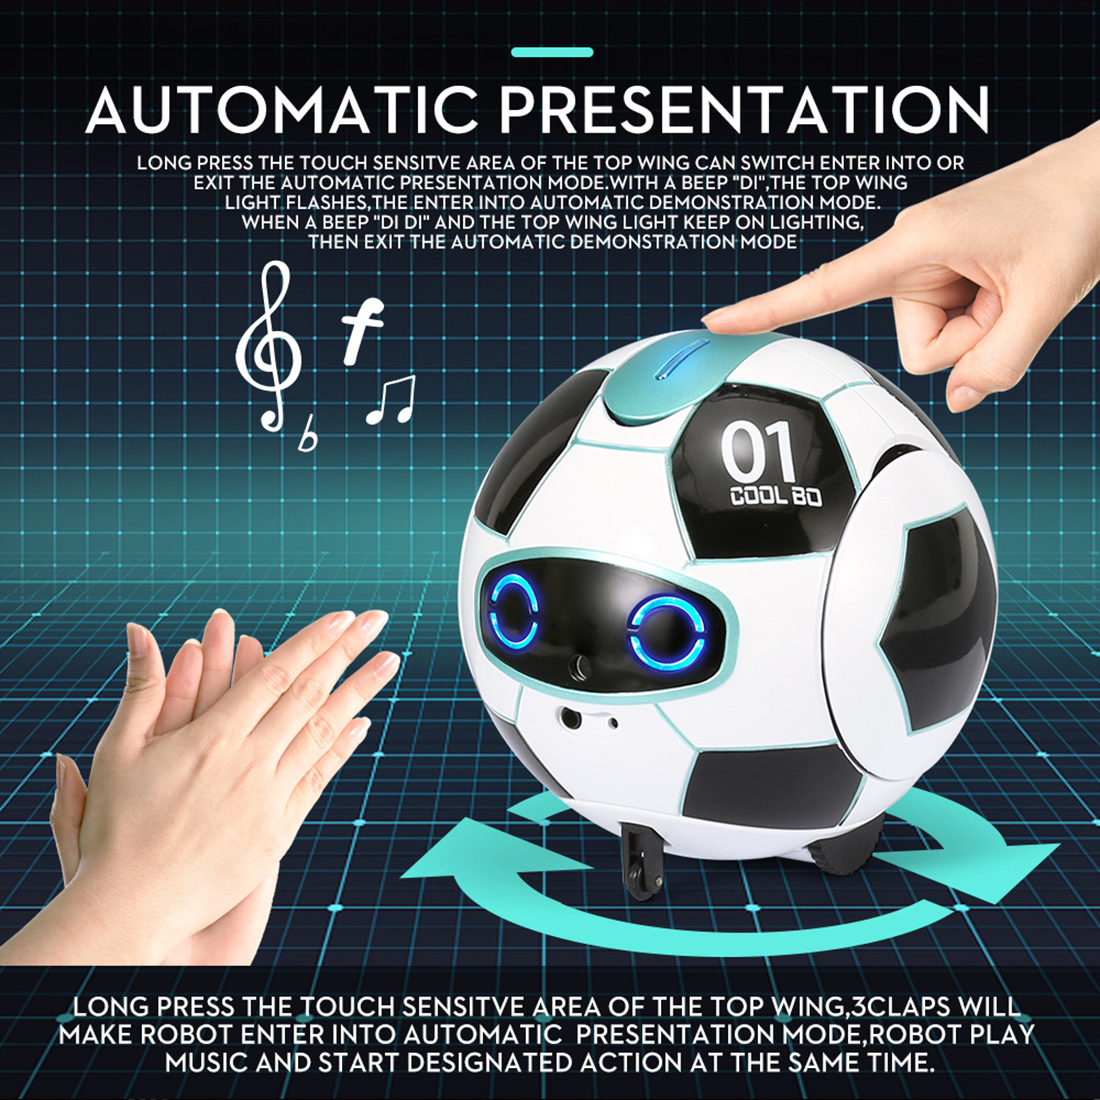 New Hot Ball Robot Gesture Sensing Intelligent Robot Electric Robot Toy With Infrared Obstacle Avoidance Voice Identification